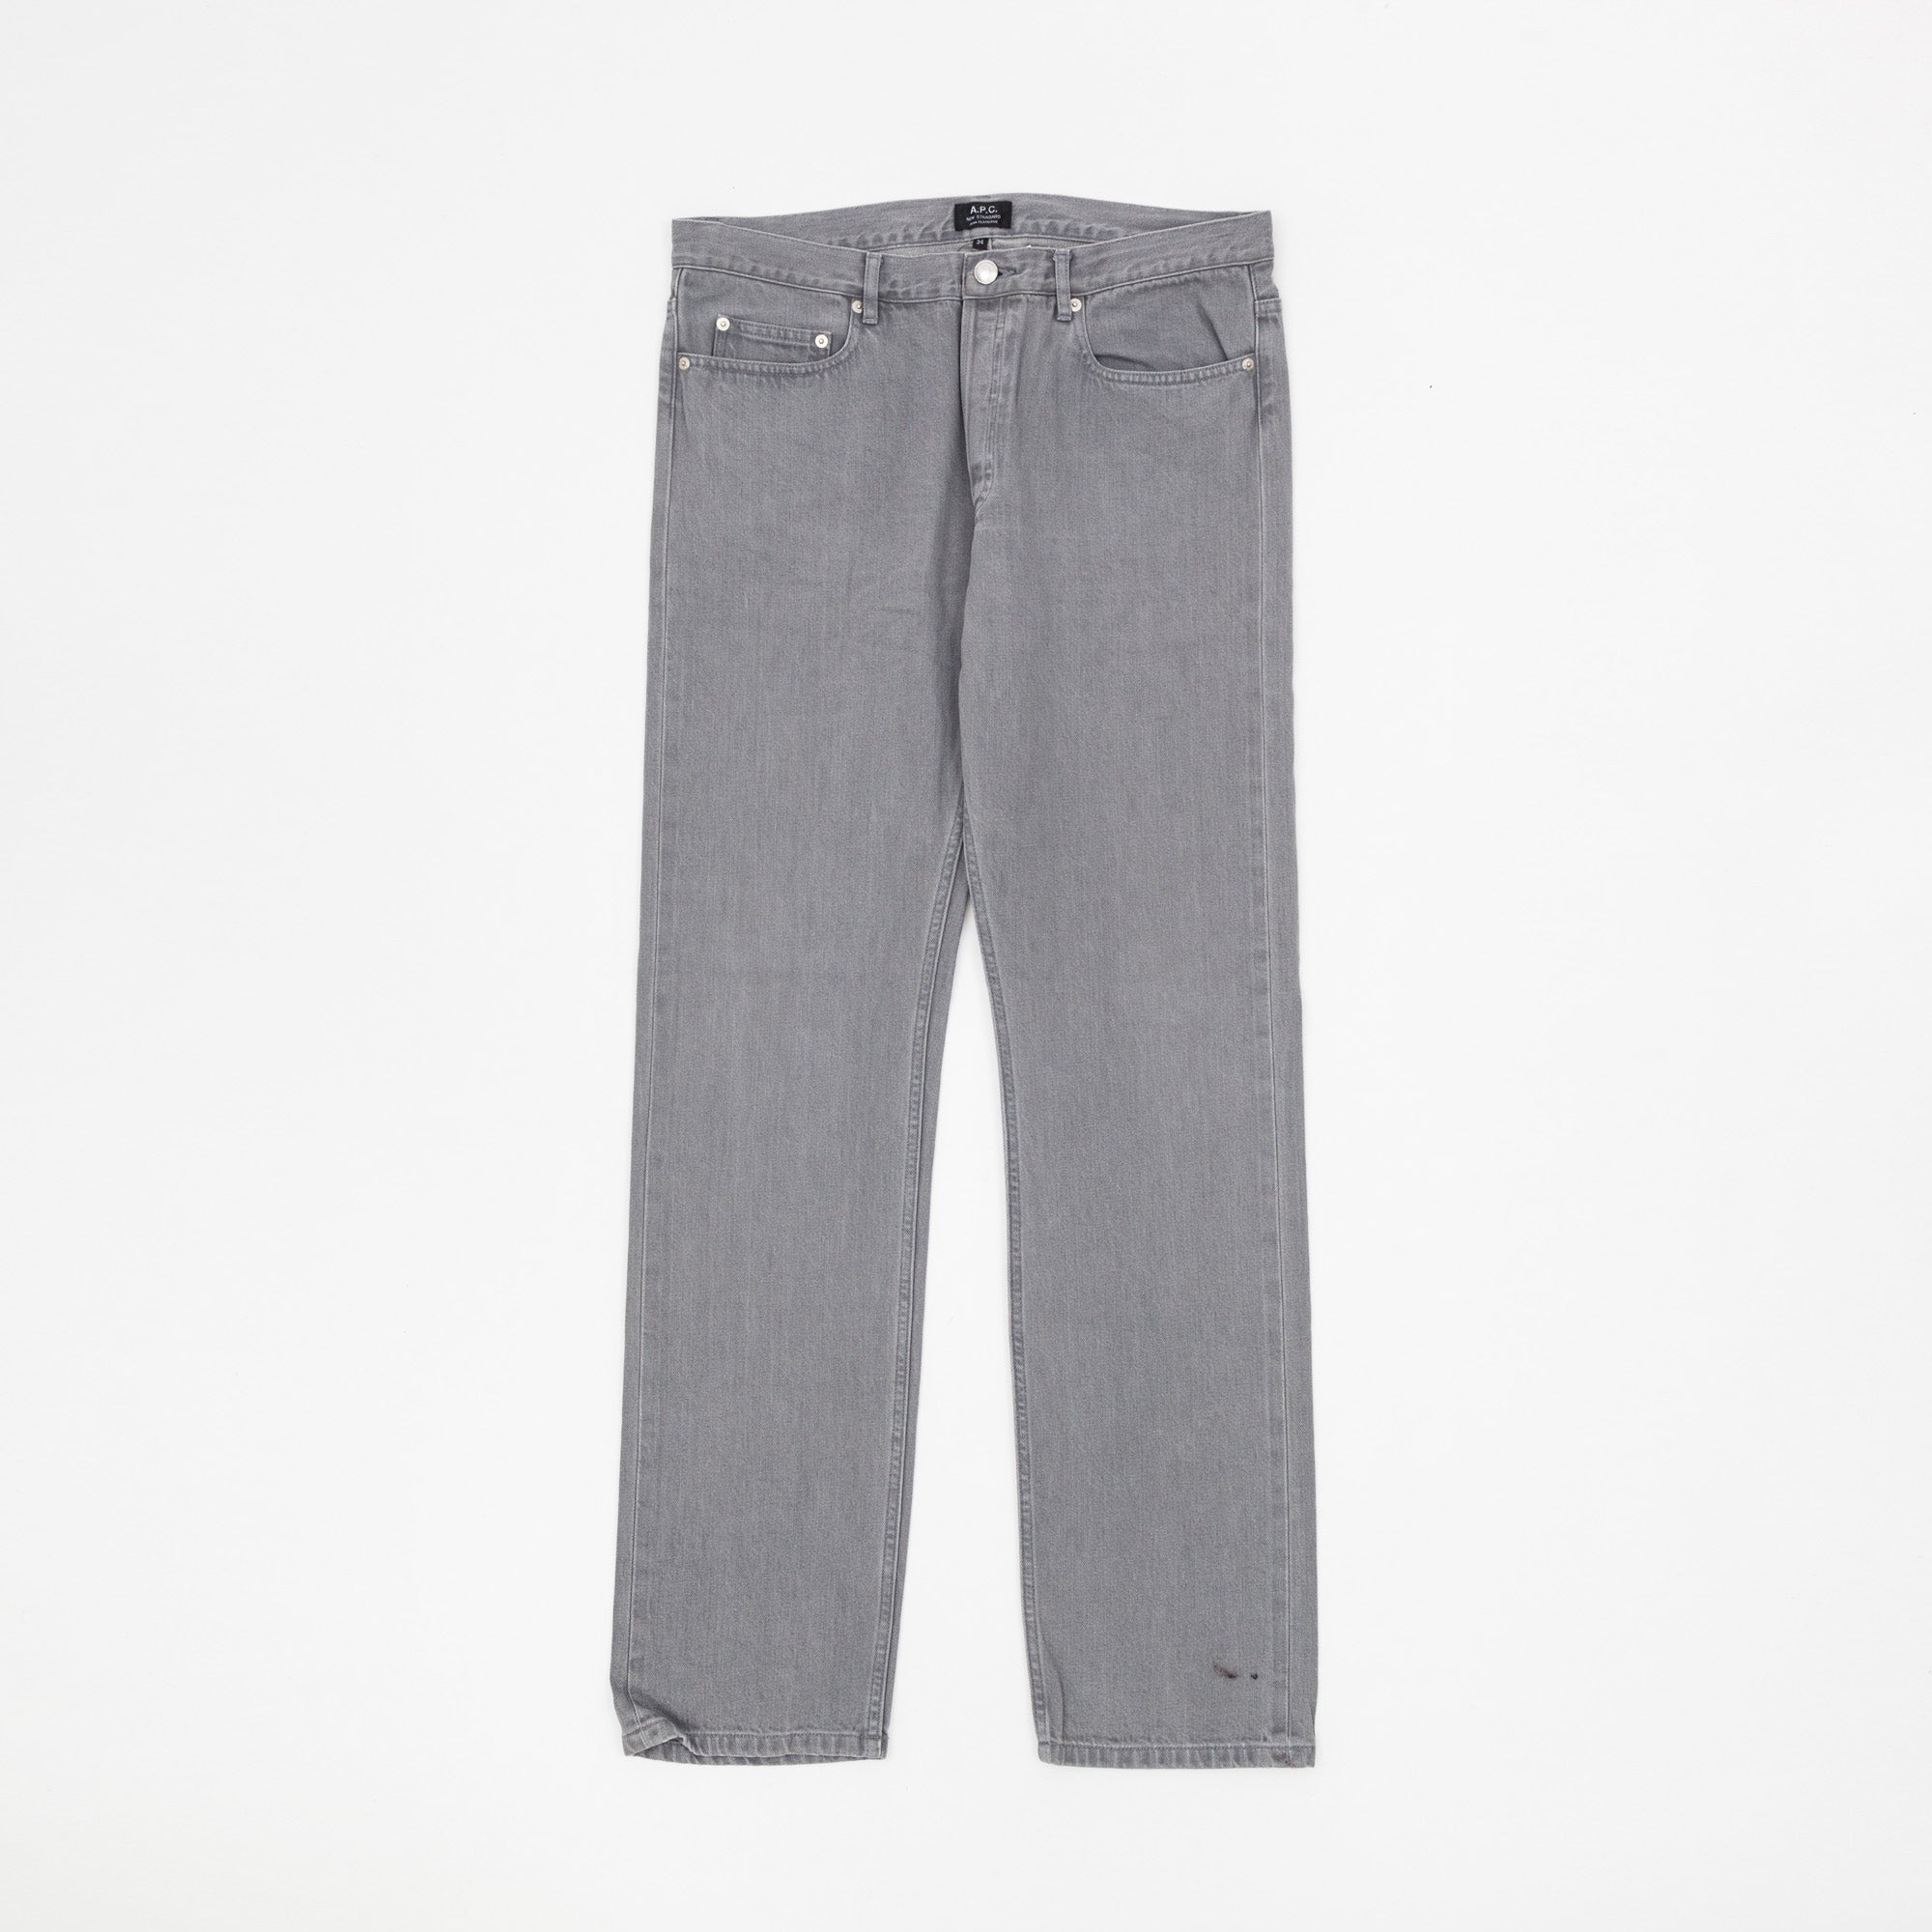 A.P.C New Standard Jeans